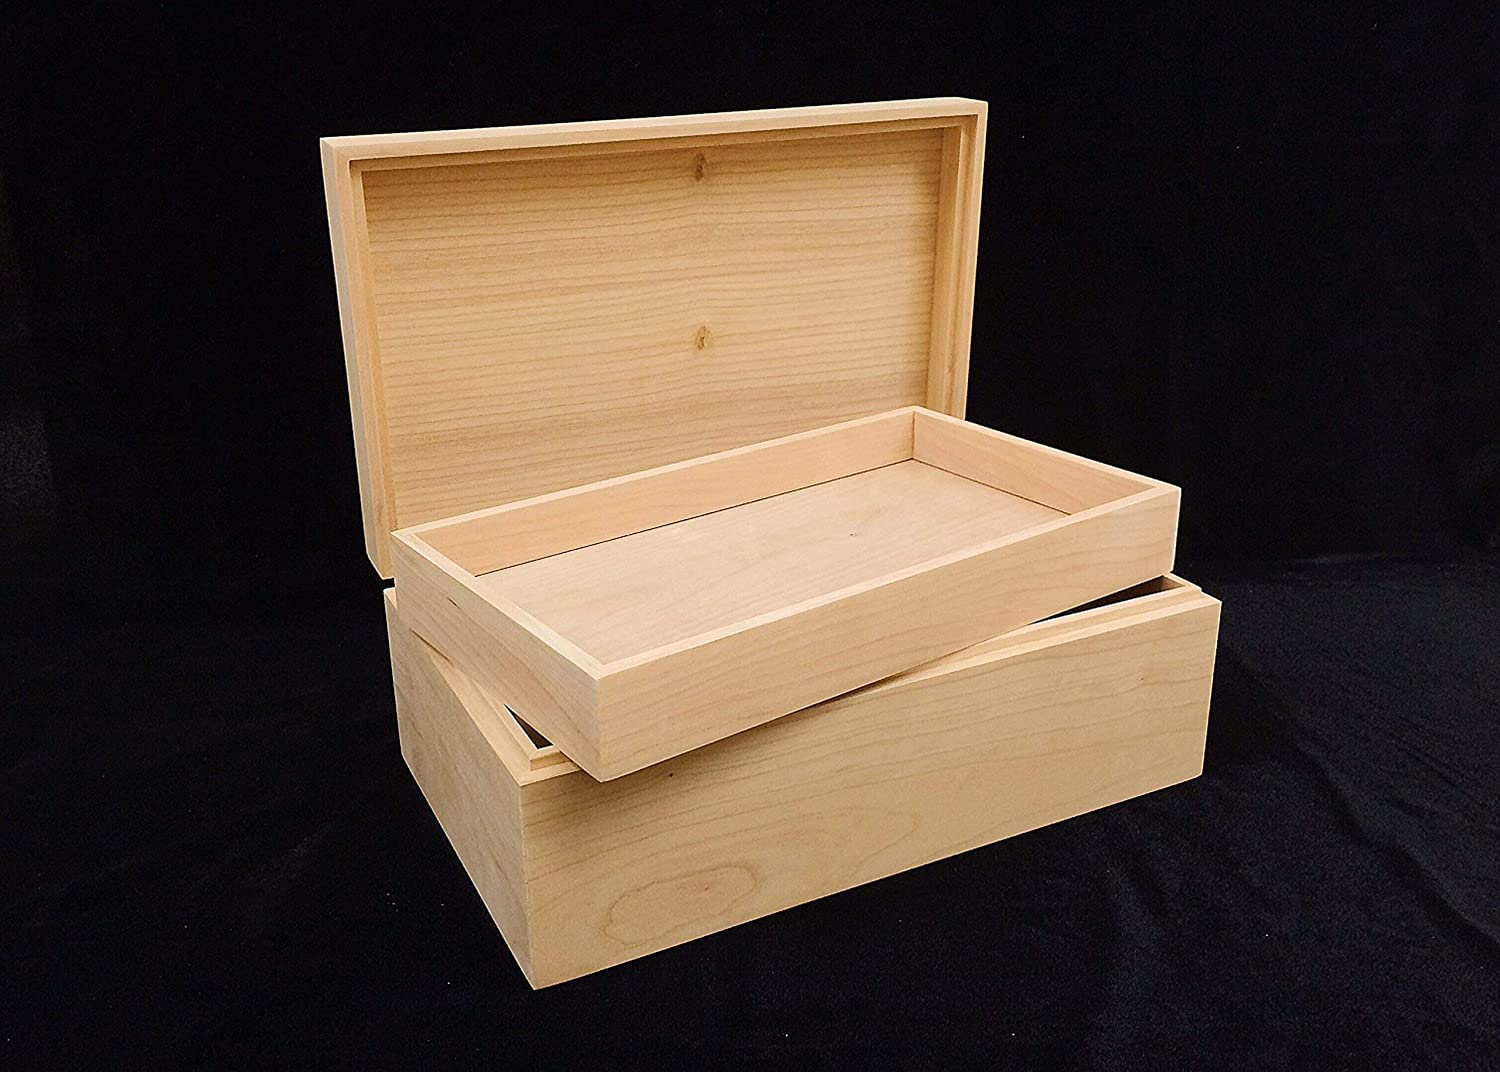 Unfinished Wood Box with Max 49% OFF Hinges Regular discount 3 x 6 Tray-10 4-unfinished